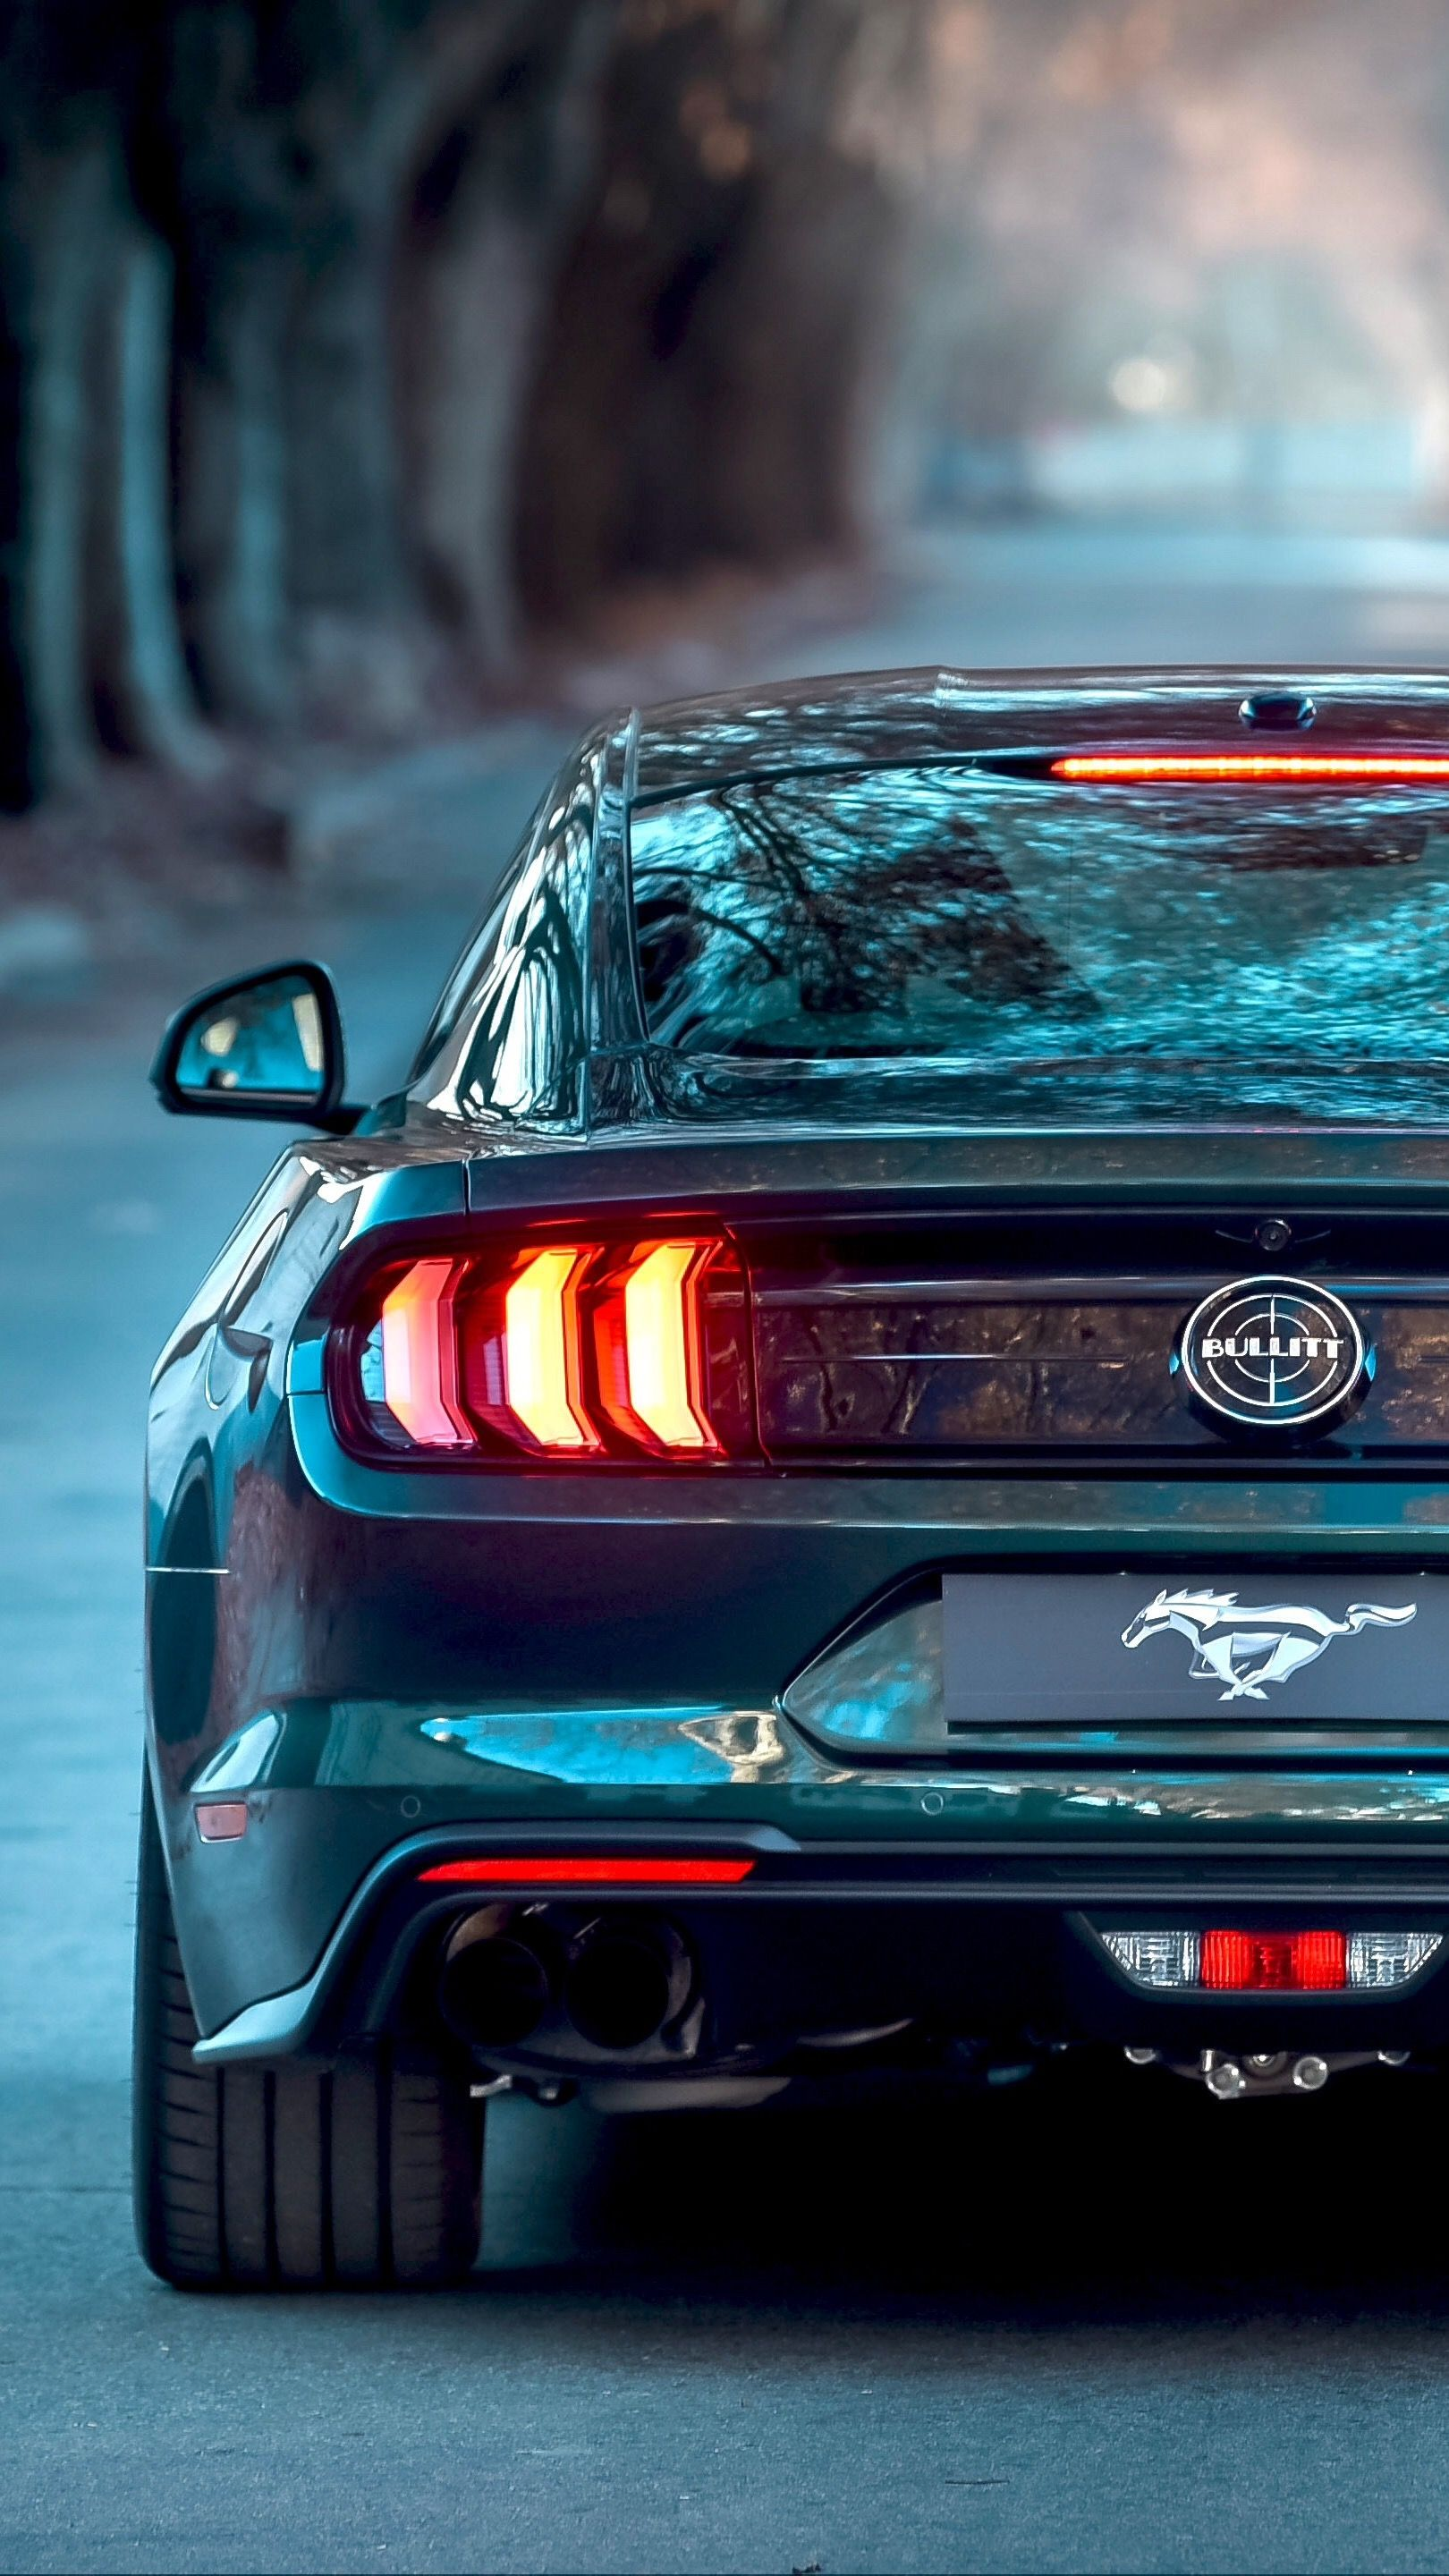 Pin By Wallpapers Phone Pad Hd On 9 16 Phone Ford Mustang Wallpaper Dodge Challenger Wallpapers Mustang Wallpaper